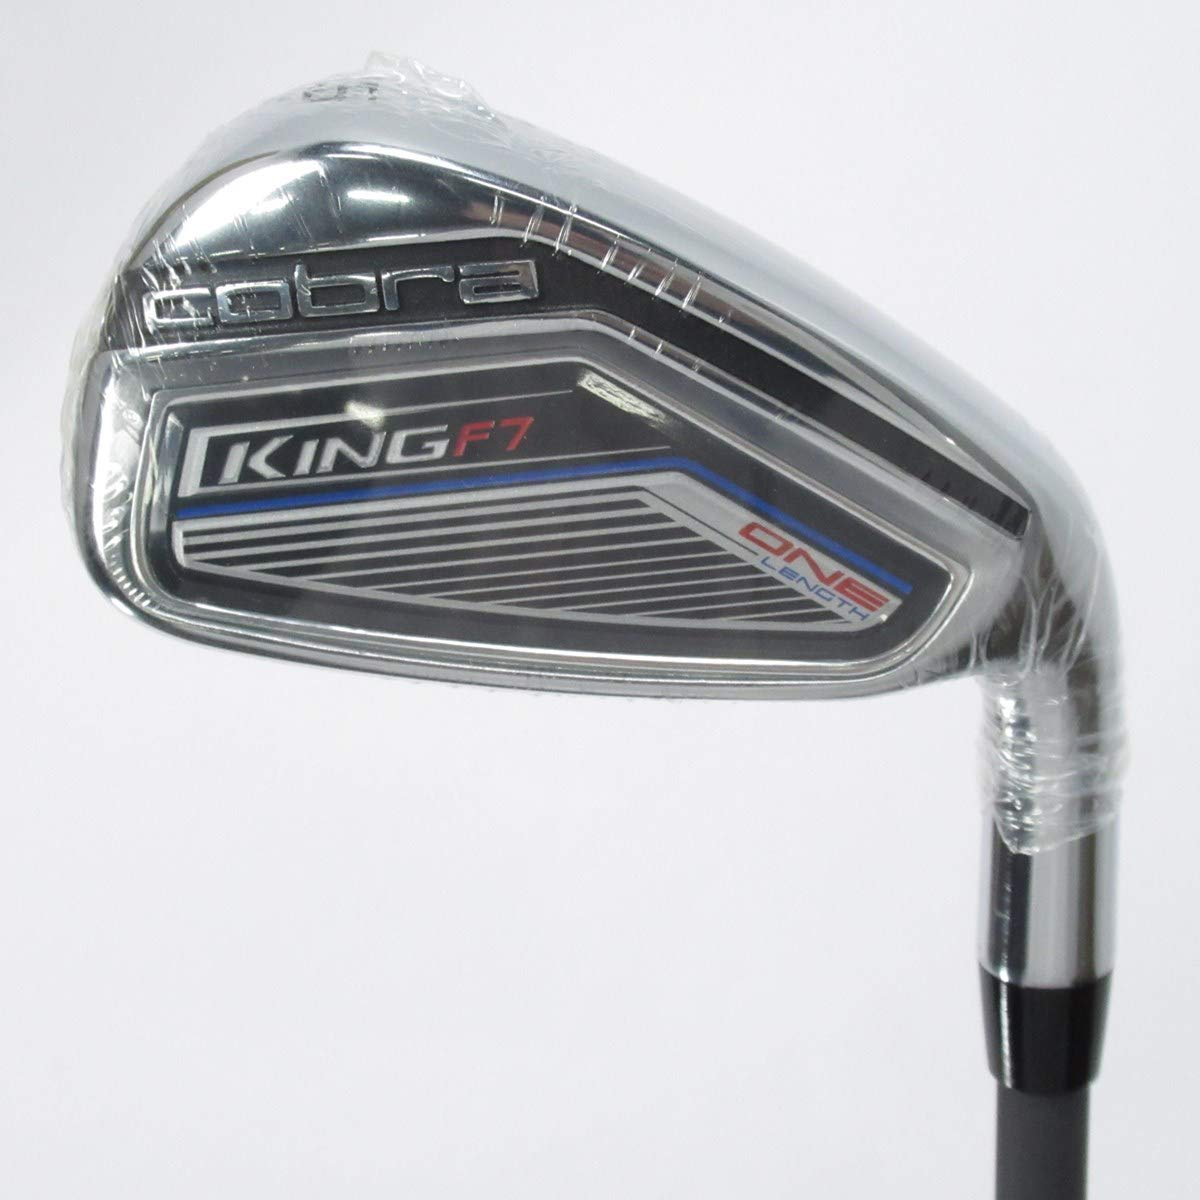 【中古】コブラ KING KING F7 ONE LENGTH アイアン cobra Speeder B07MZWL1PW  R